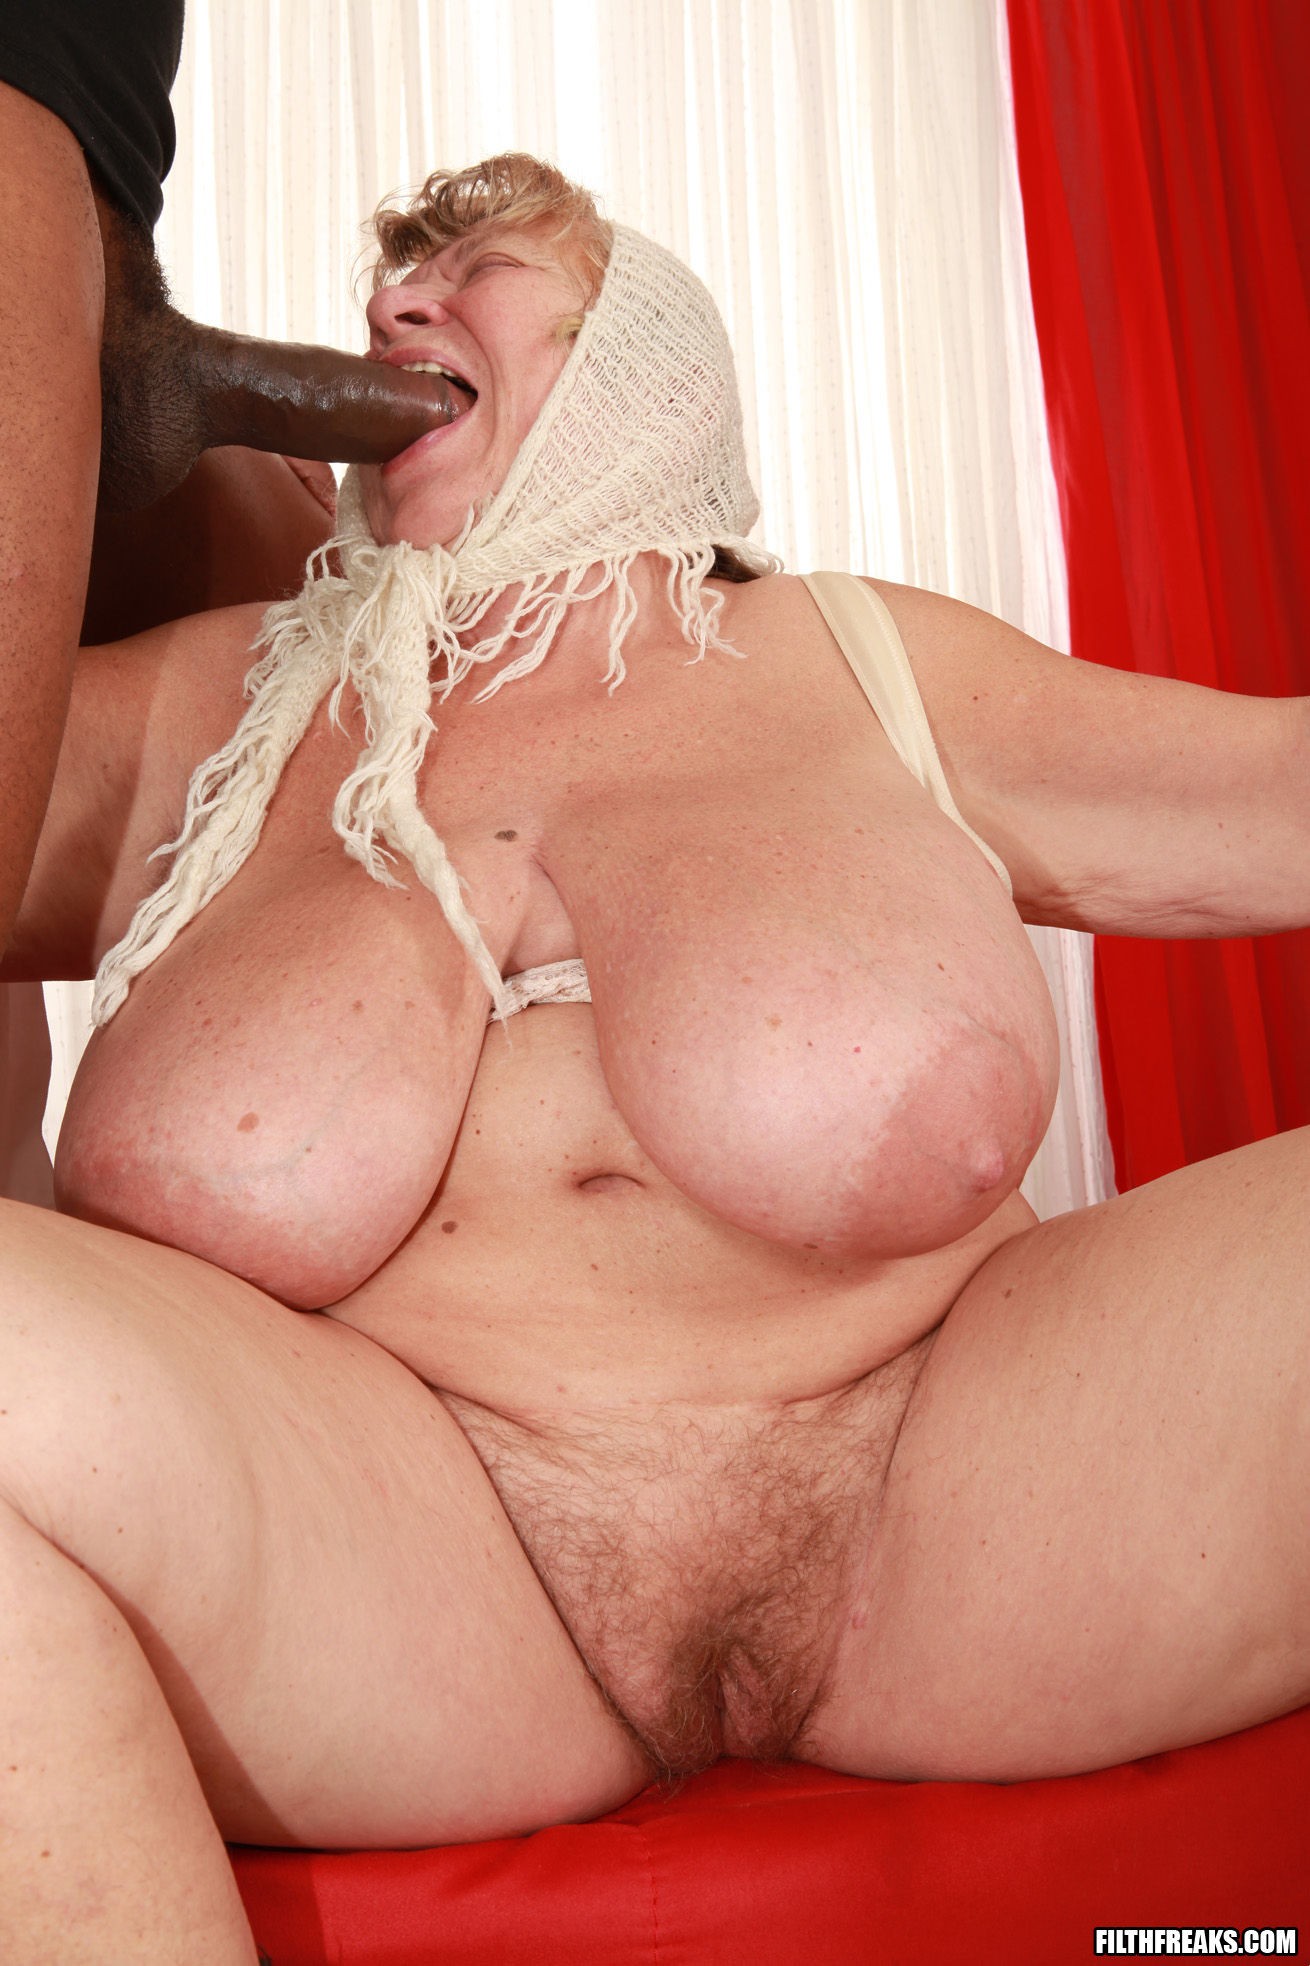 hot mexican chichis nude